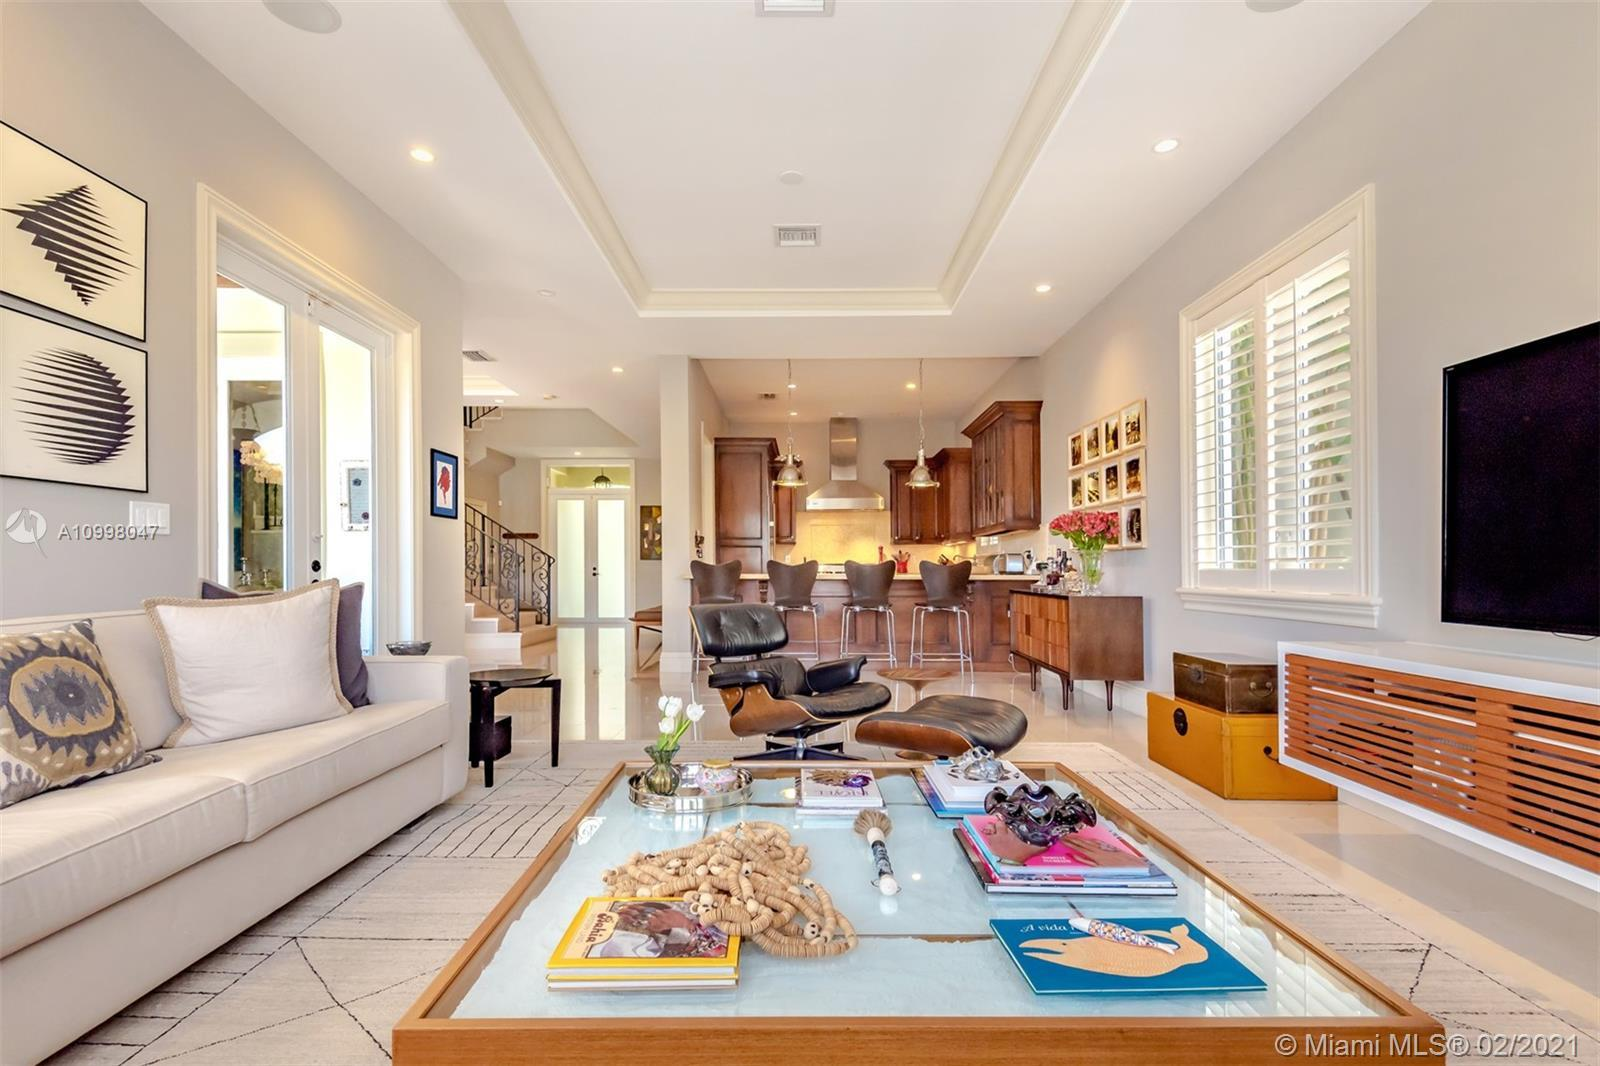 Beautiful 4 Bed and 4/1 Bath Townhome in Gables Waterway! Fantastic water views. This is 1 of only 4